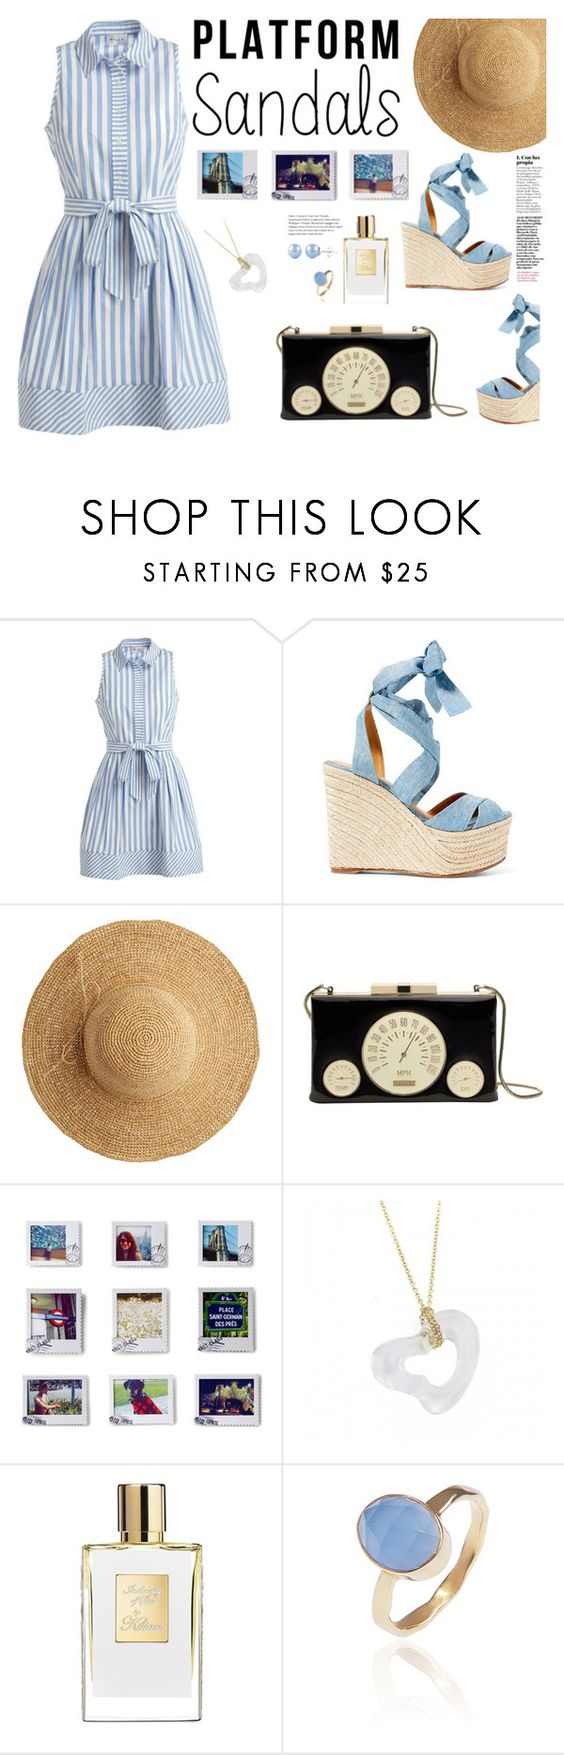 """""""Stand Up! Platform Sandals"""" by syavina on Polyvore featuring Milly, Ralph Lauren, Flora Bella, Kate Spade, Dot & Bo, Tiffany & Co., Latelita, platforms, contestentry and polyvoreeditorial"""